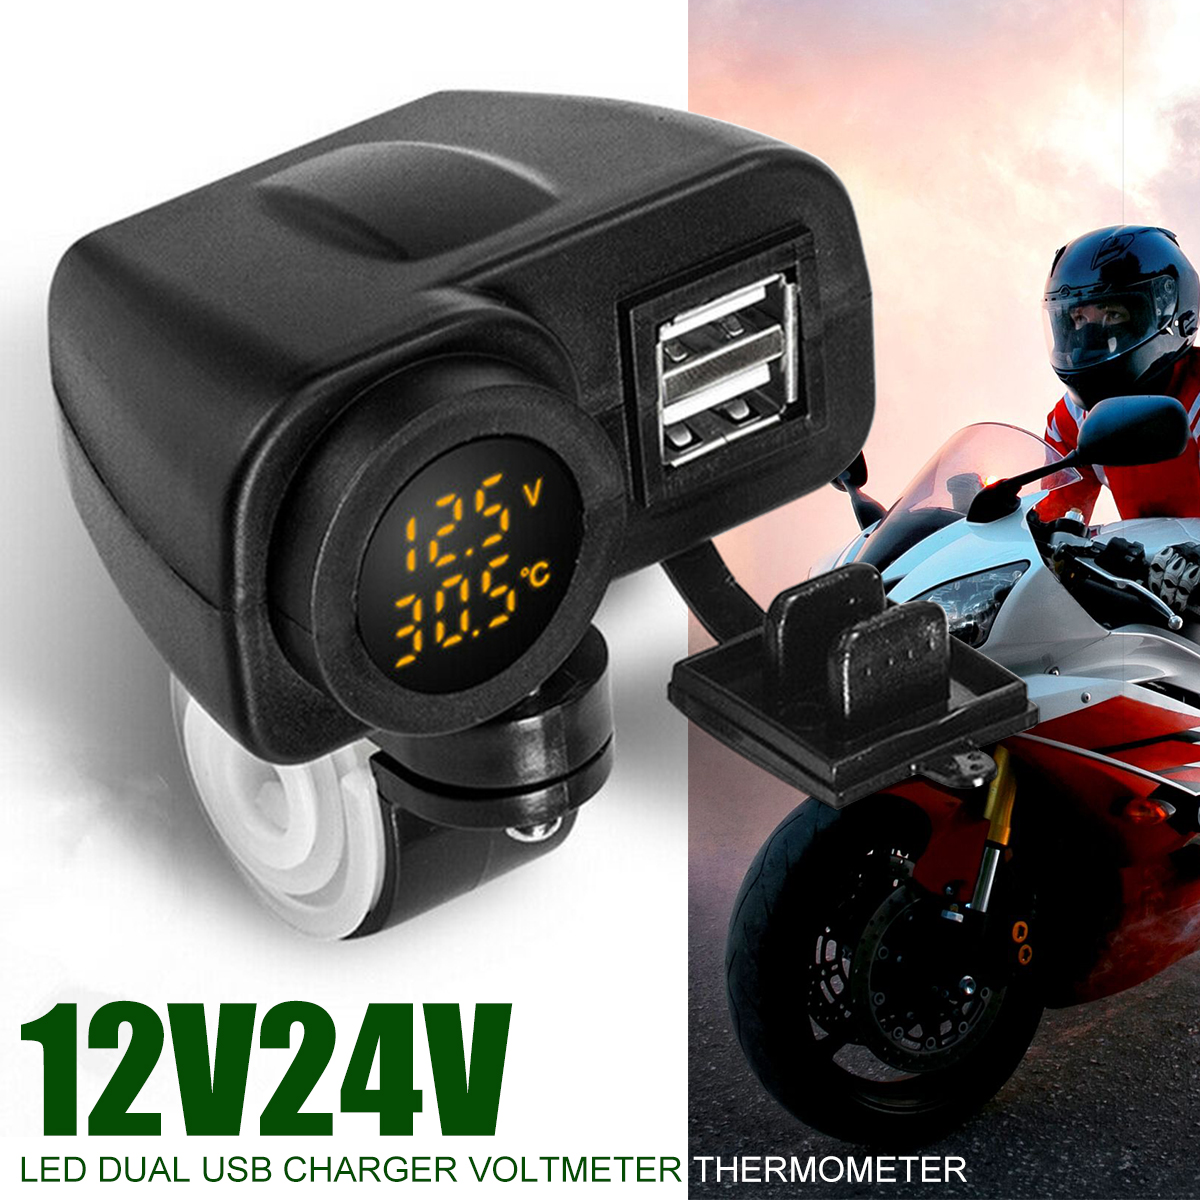 1pc Motorcycle USB Charger For Moto 2.1A 5V Motorcycle Charger With Voltmeter Yellow LED Display Thermometer